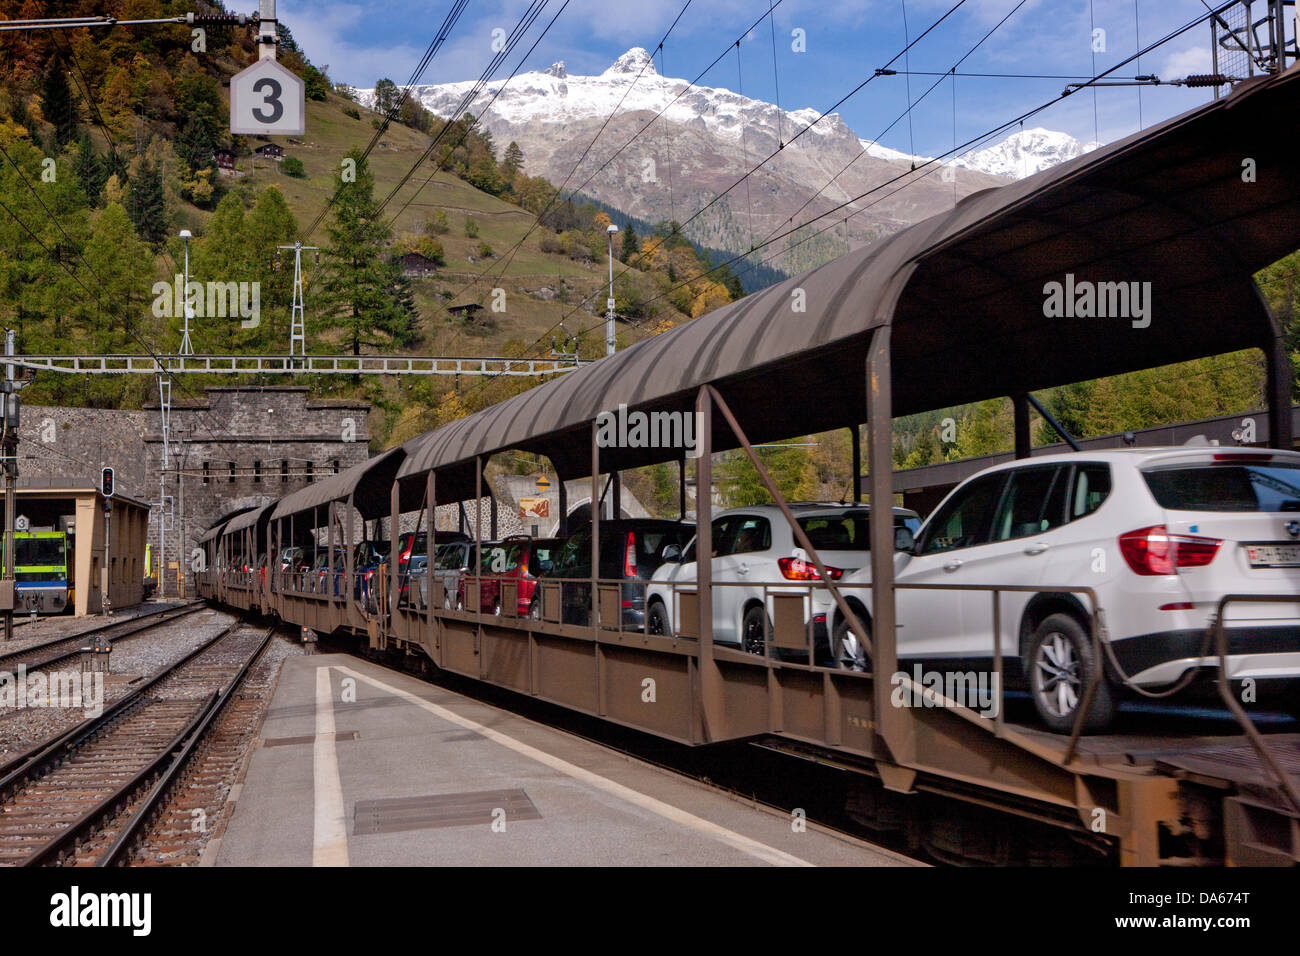 Tunnel, entrance, Goppenstein, VERSUS, road, railway, train, railroad, autumn, Lötschberg, canton, Valais, - Stock Image